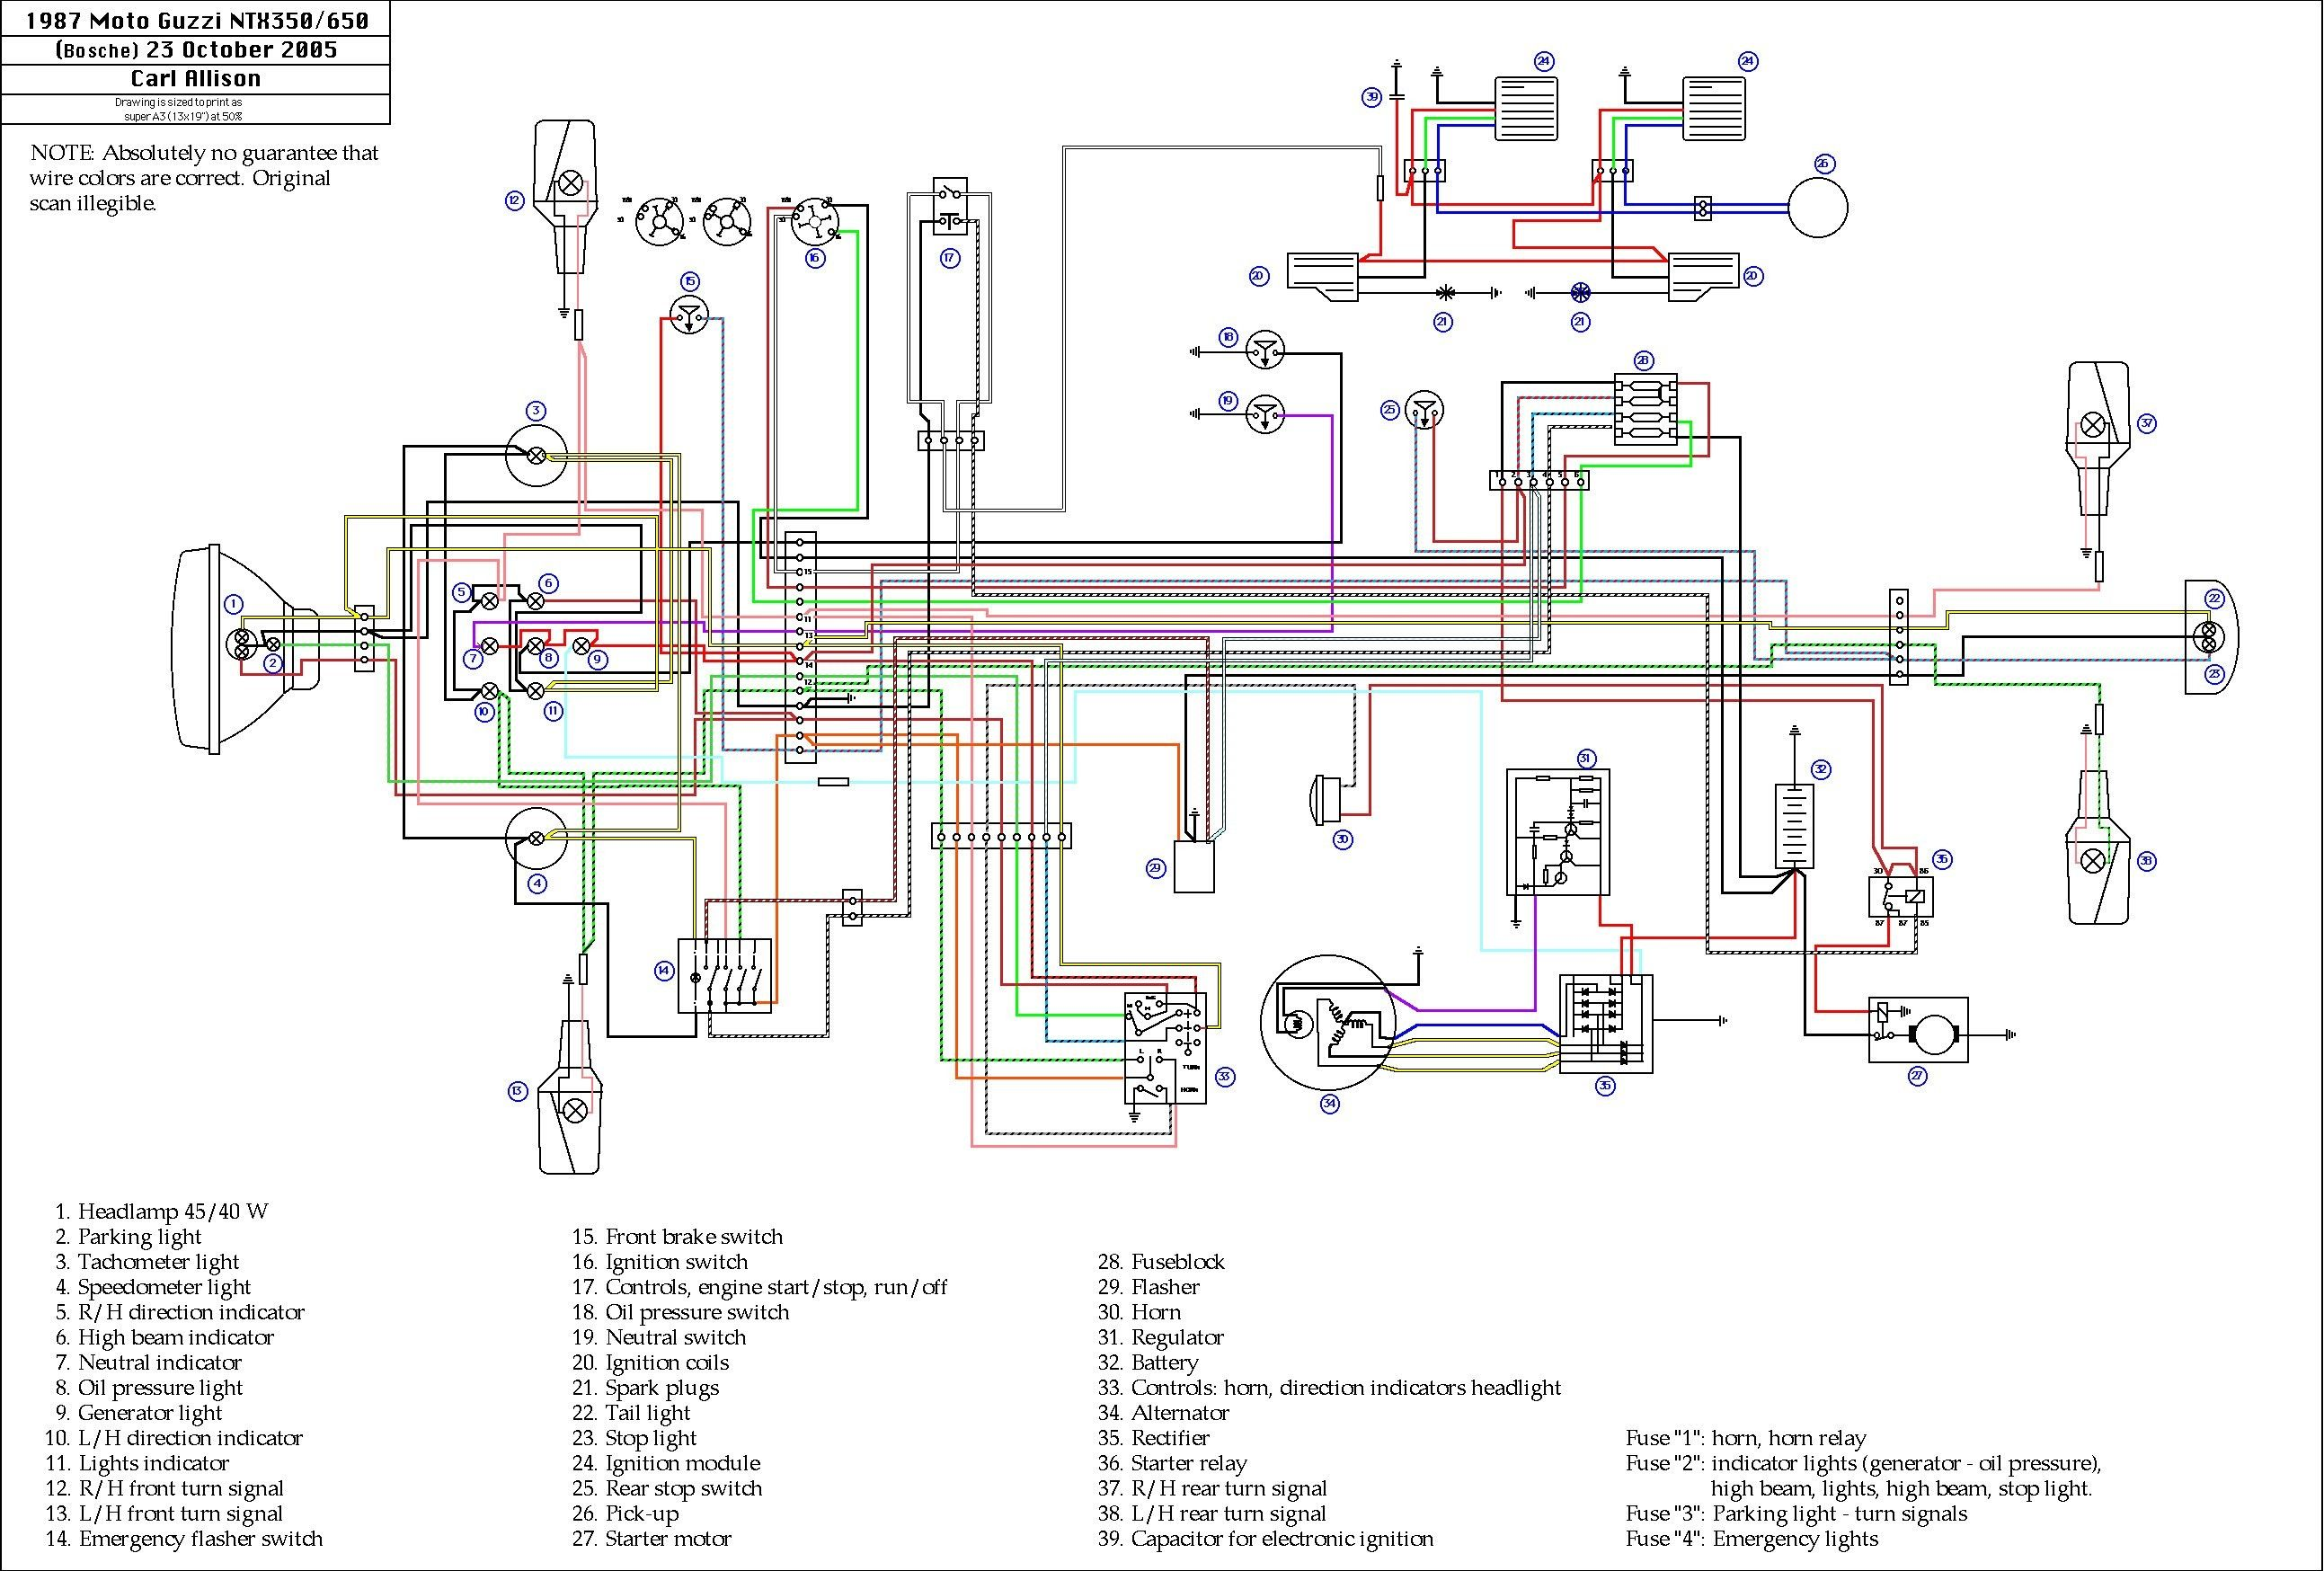 2004 Yamaha Kodiak 400 Wiring Diagram Unique In 2020 Motorcycle Wiring Electrical Diagram Electrical Wiring Diagram